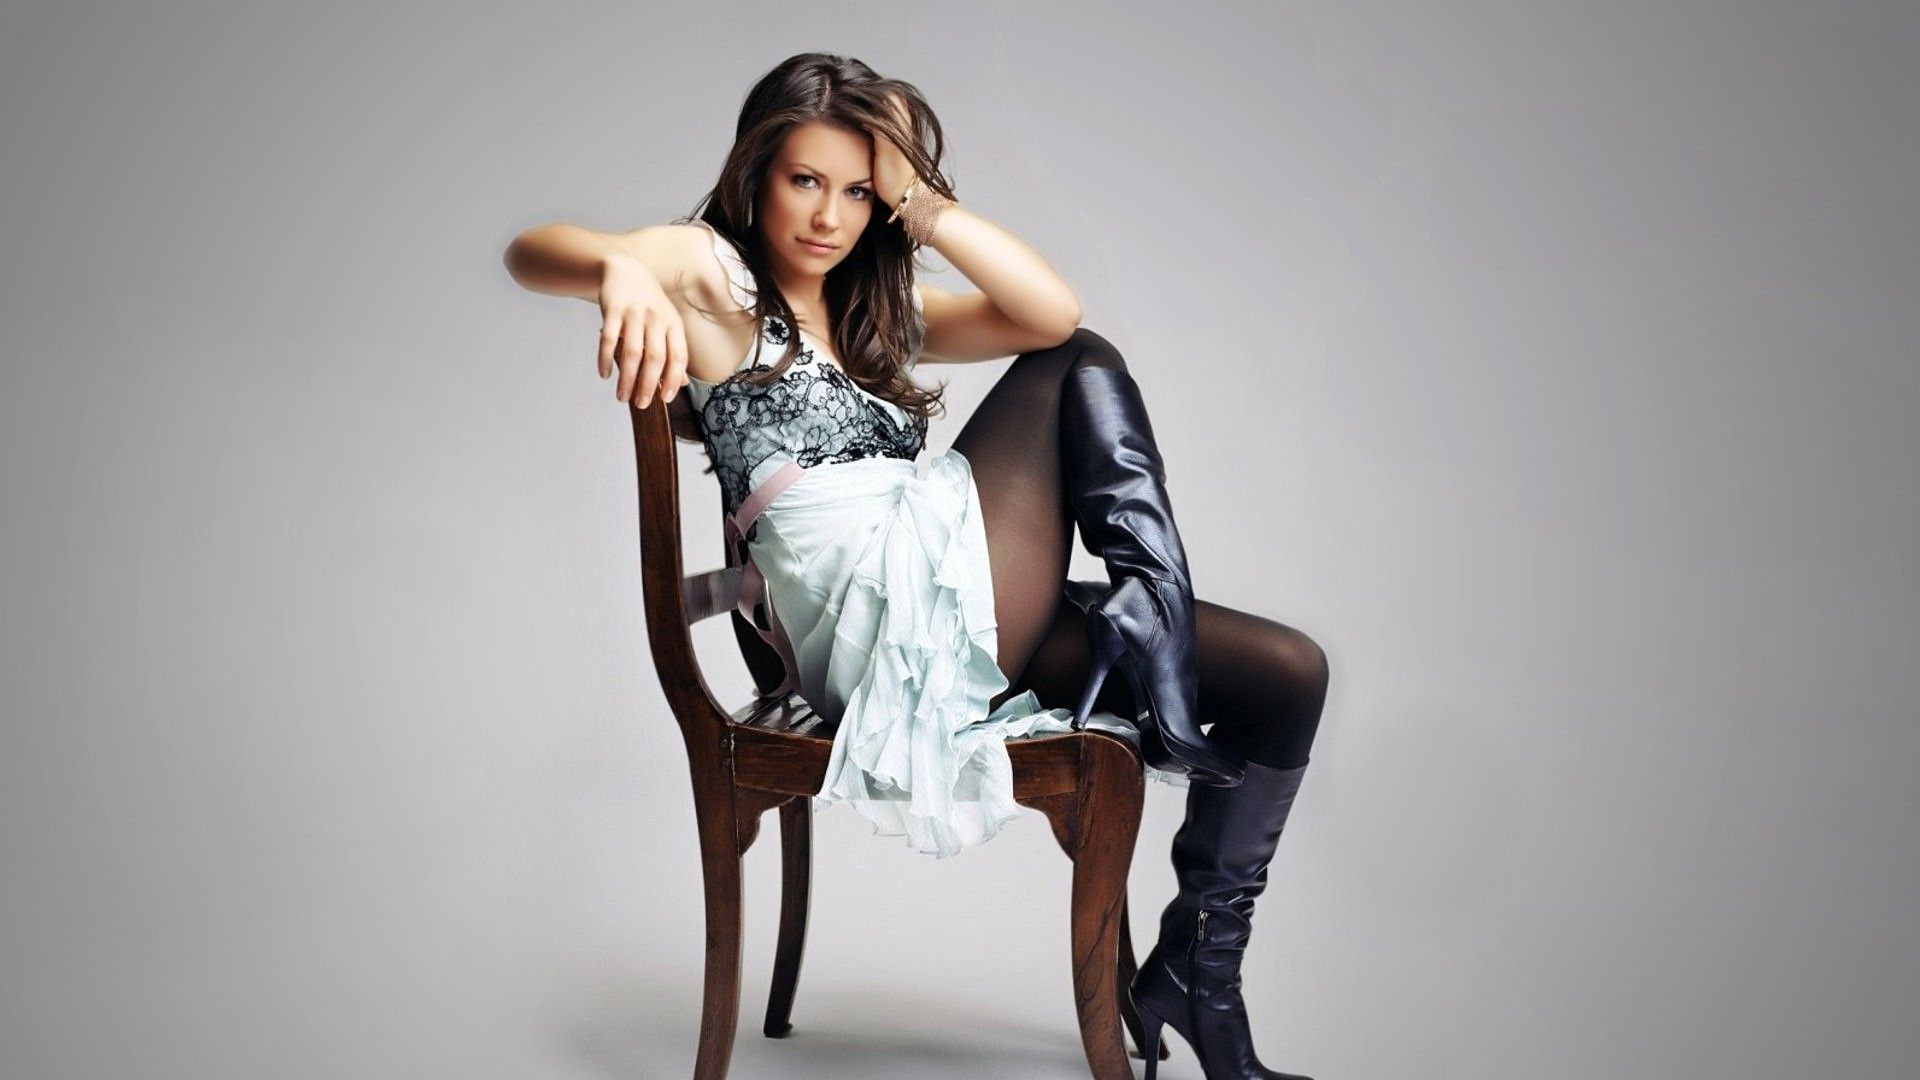 Evangeline Lilly Widescreen for desktop